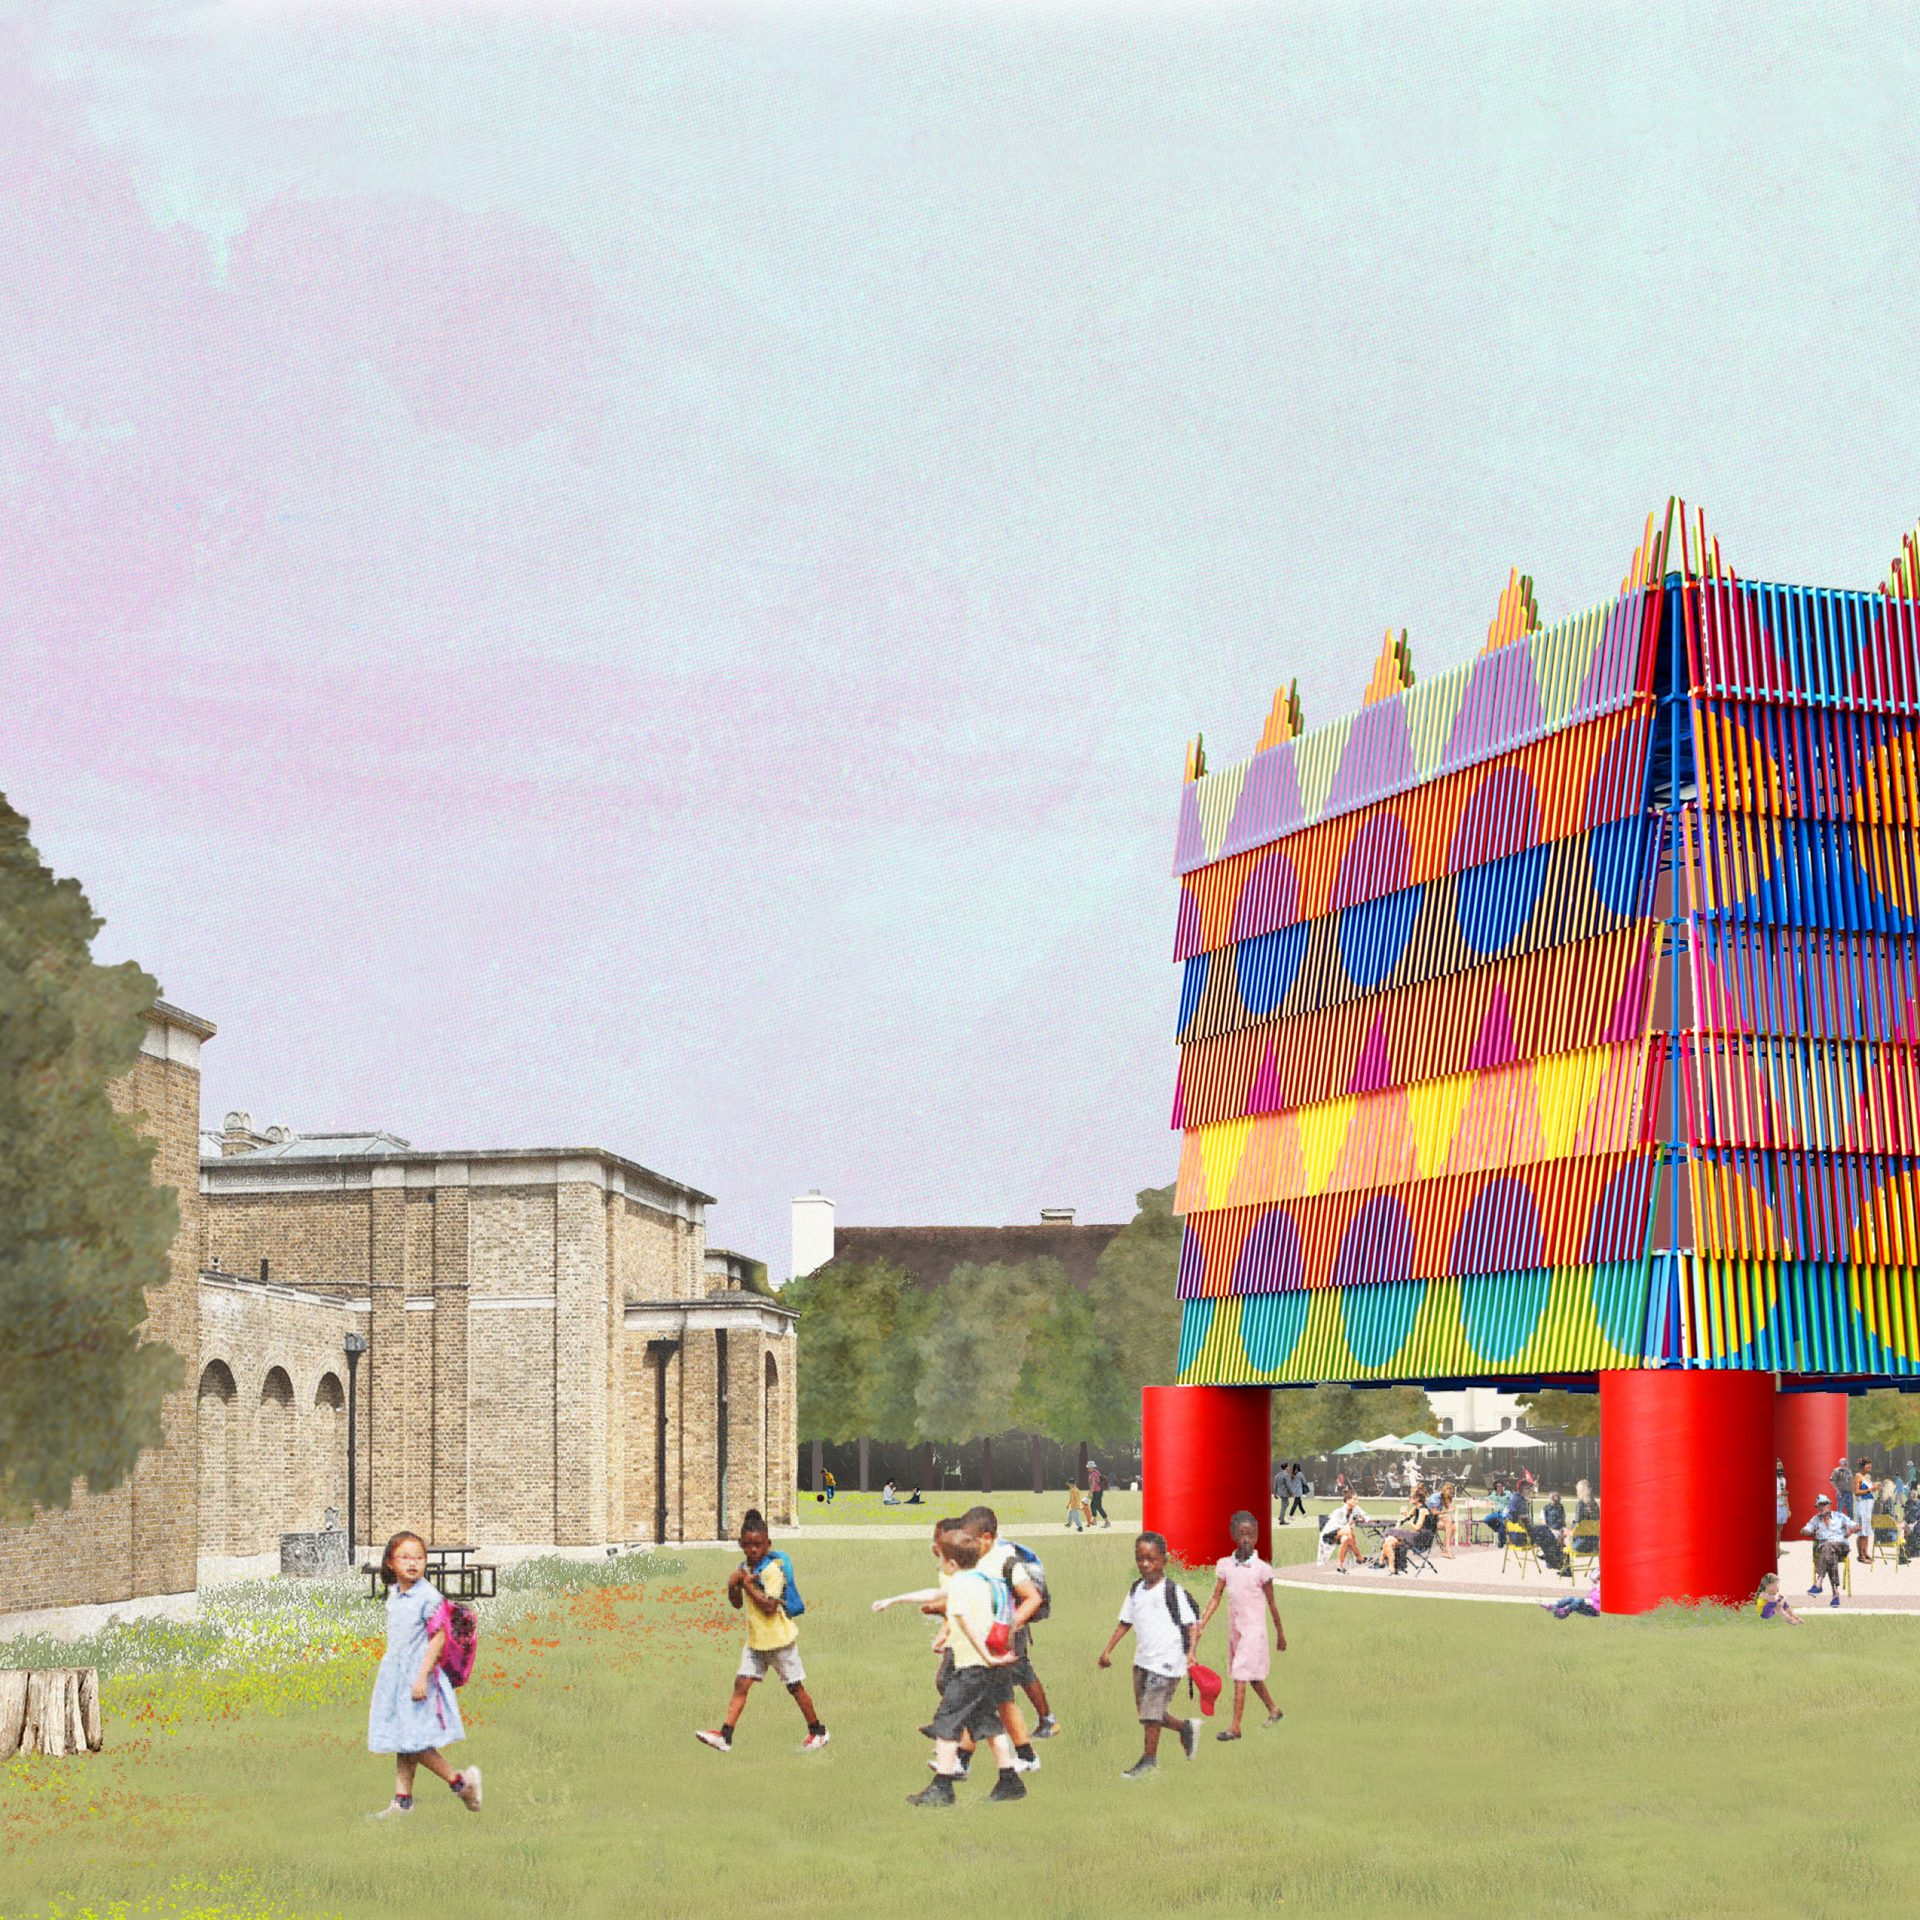 2019 Dulwich Pavilion receives planning permission